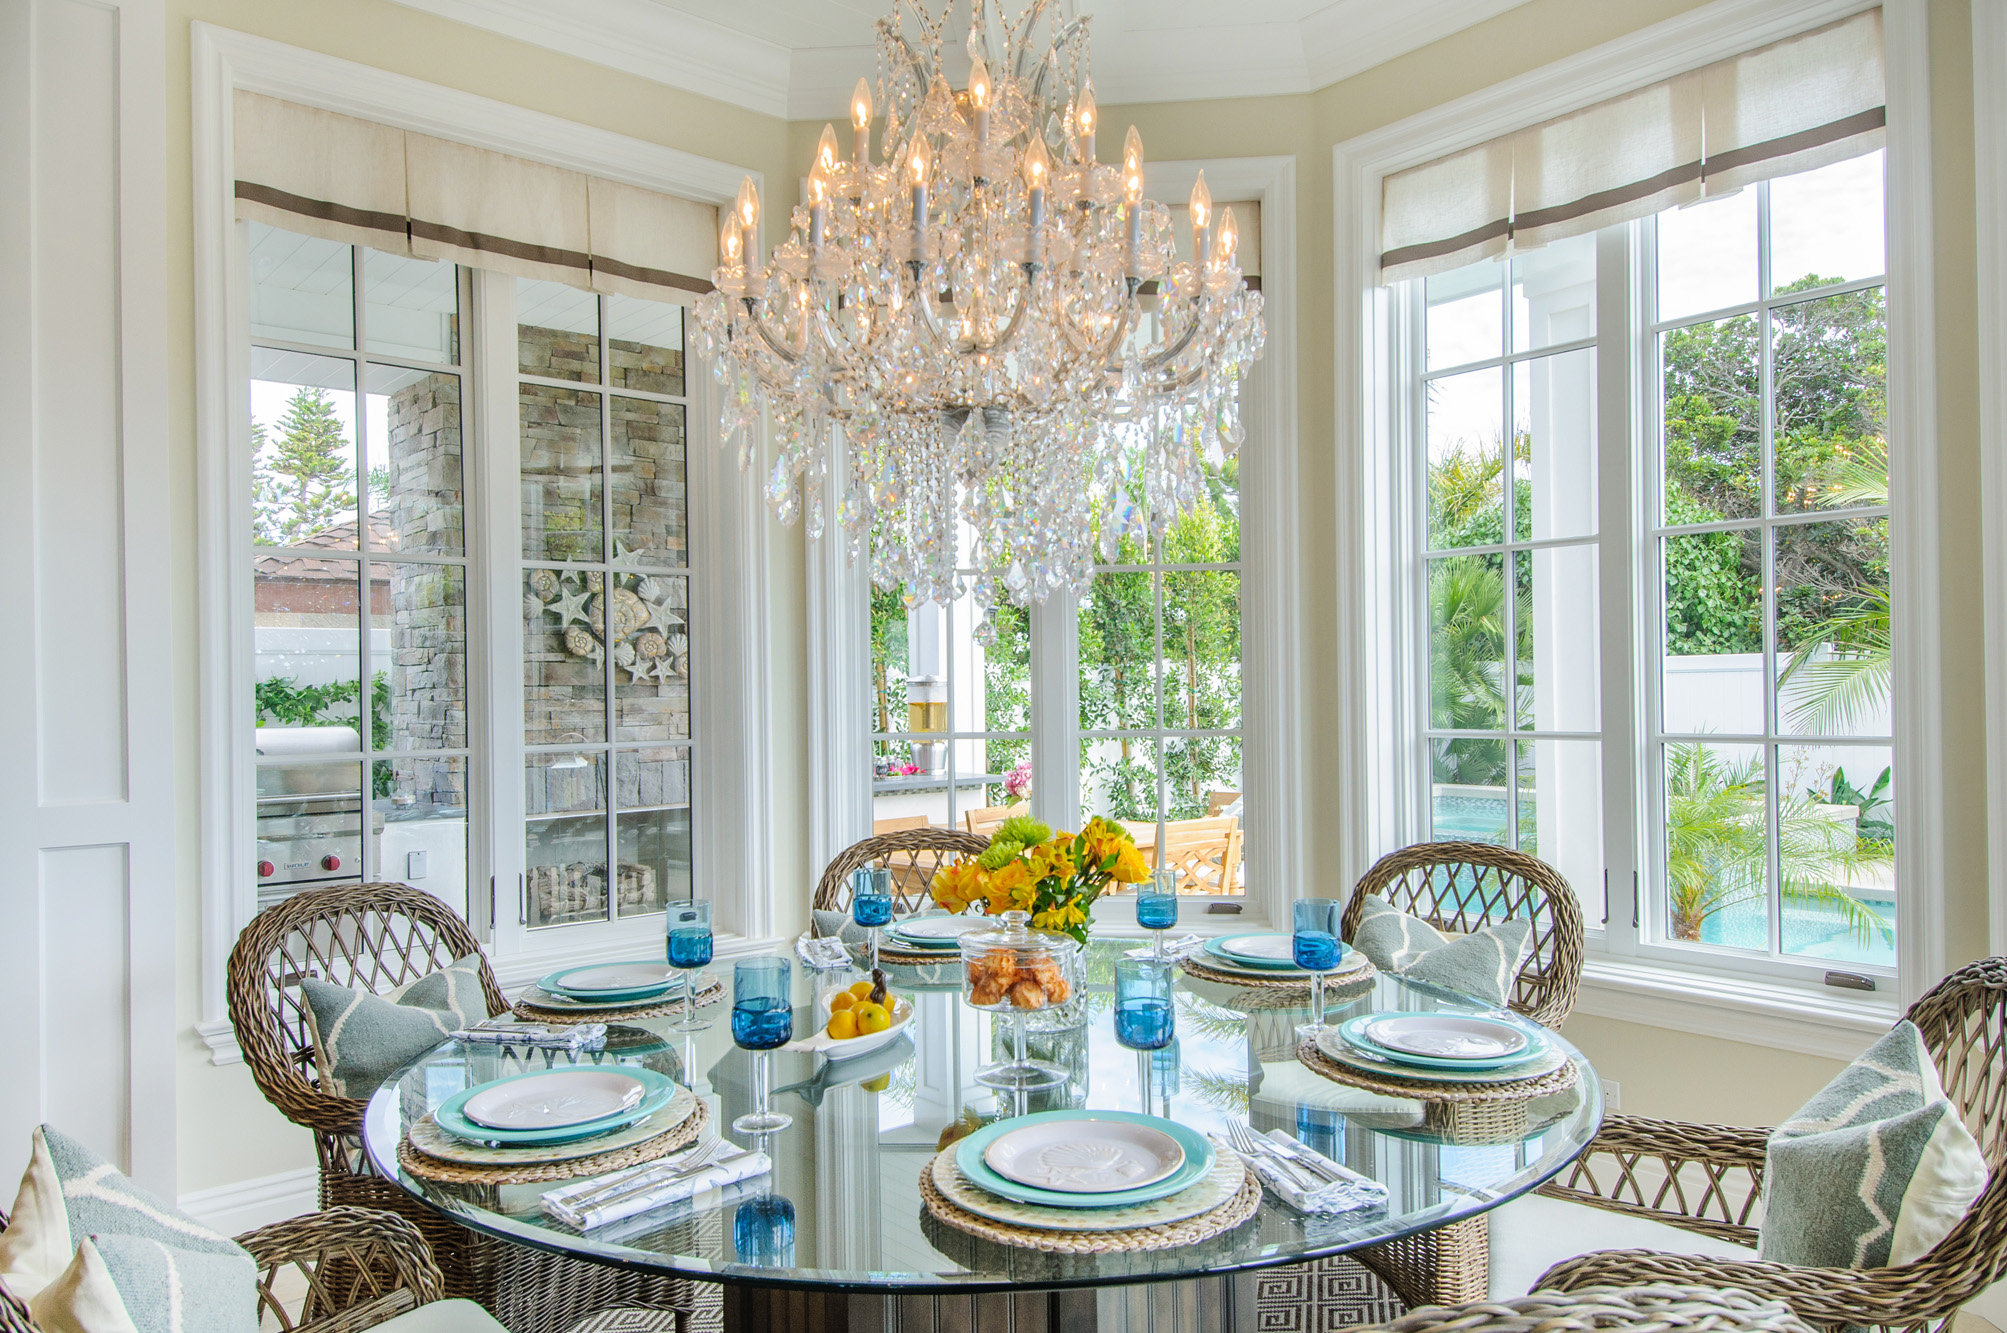 capecod-glass dining table.jpg